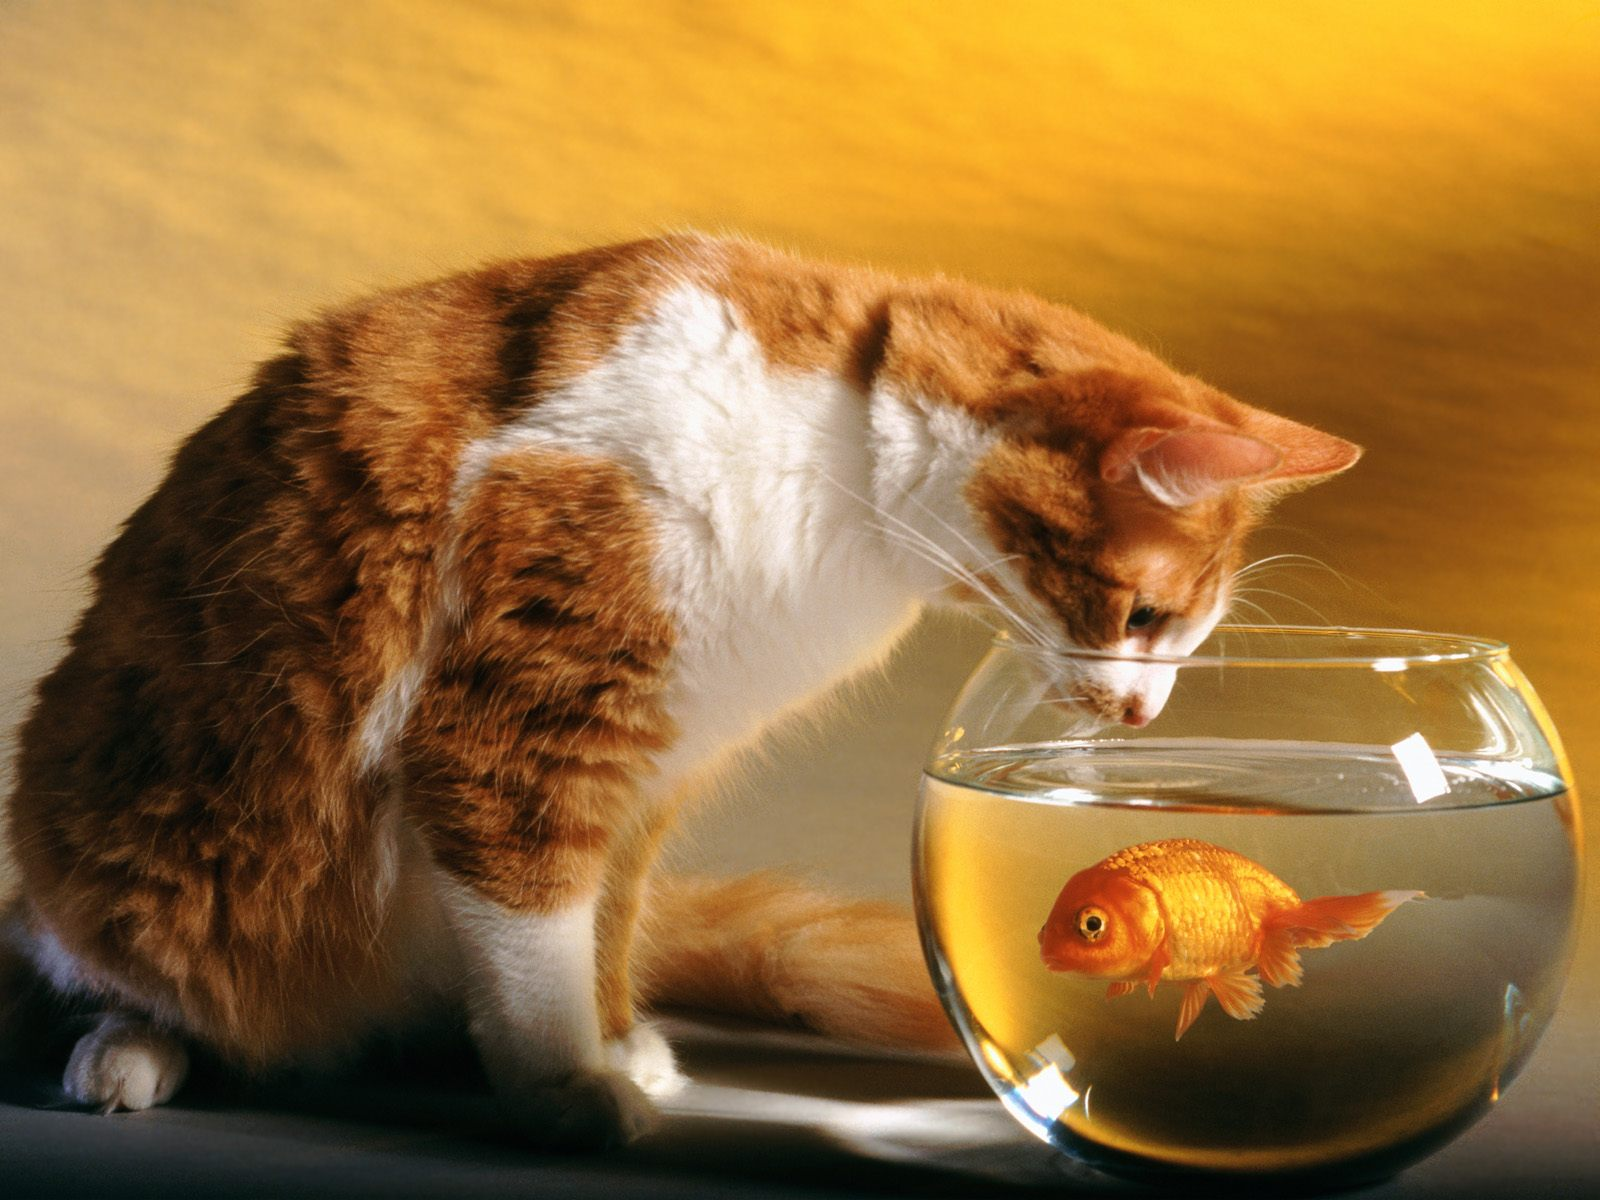 click to free download the wallpaper--Funny Cat Photo, Focusing on the Fish in Tank, When Can I Eat You Up? 1600X1200 free wallpaper download